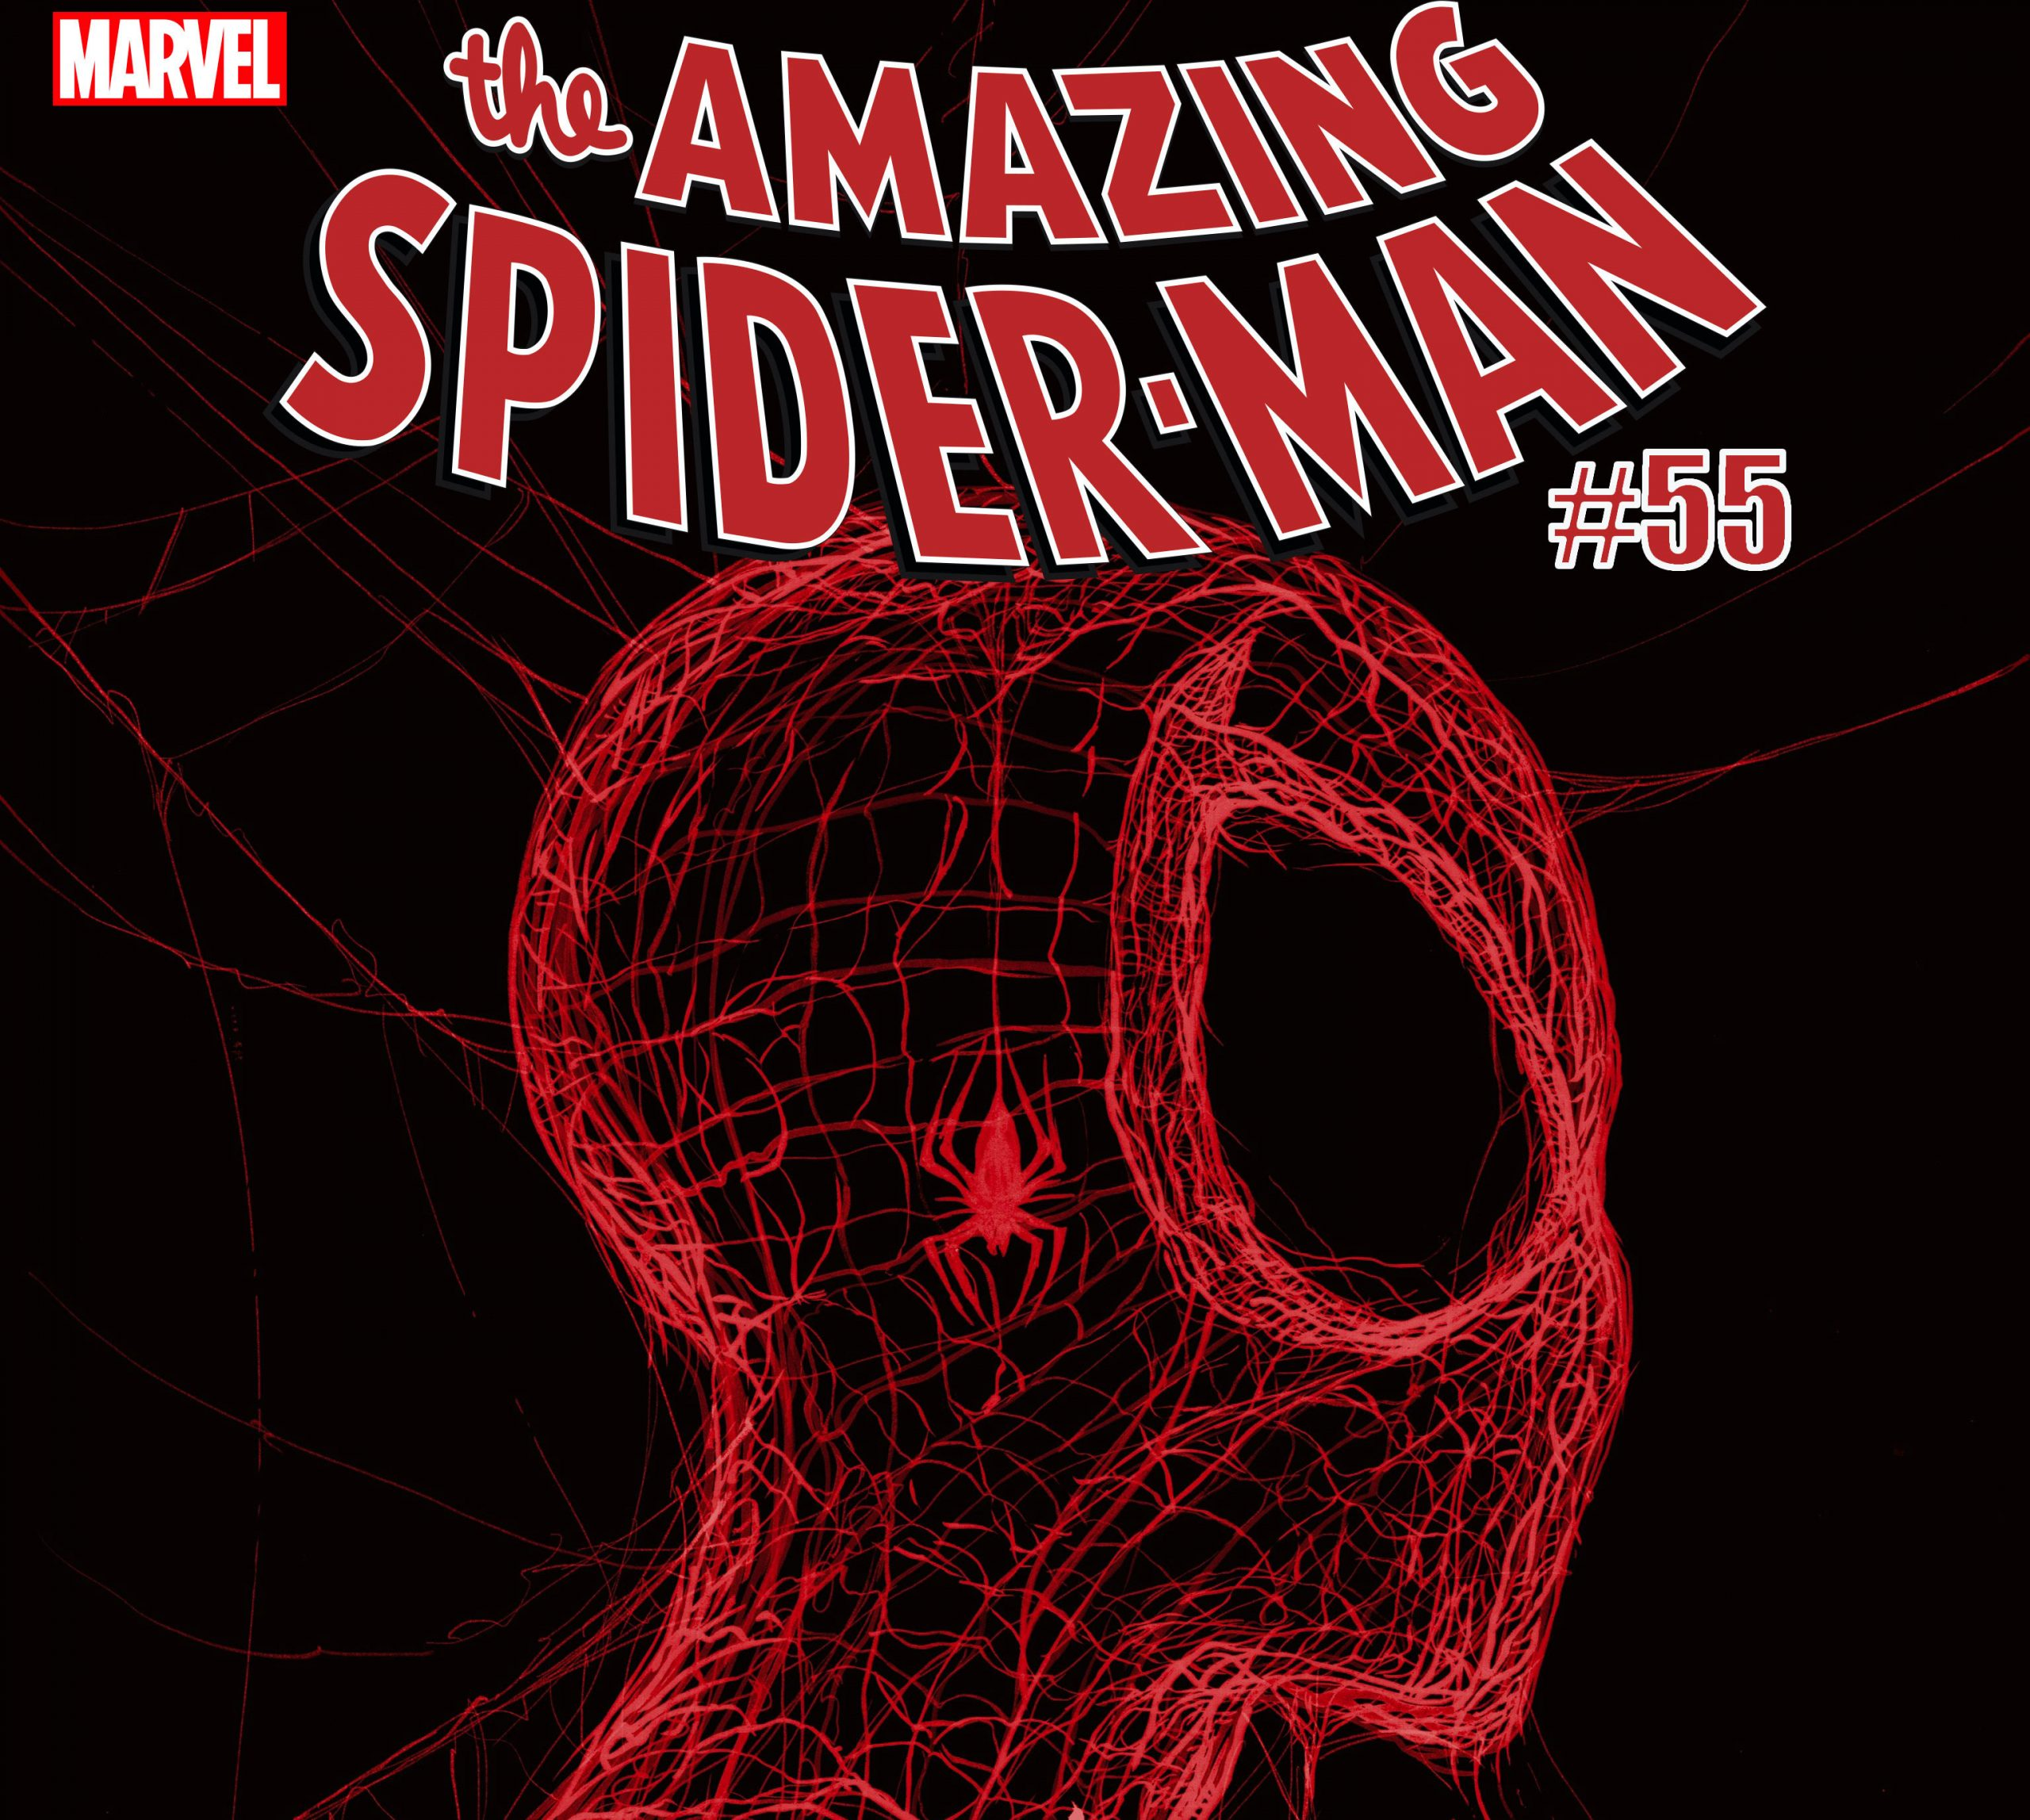 'Amazing Spider-Man' #55 gets rushed back for a second printing